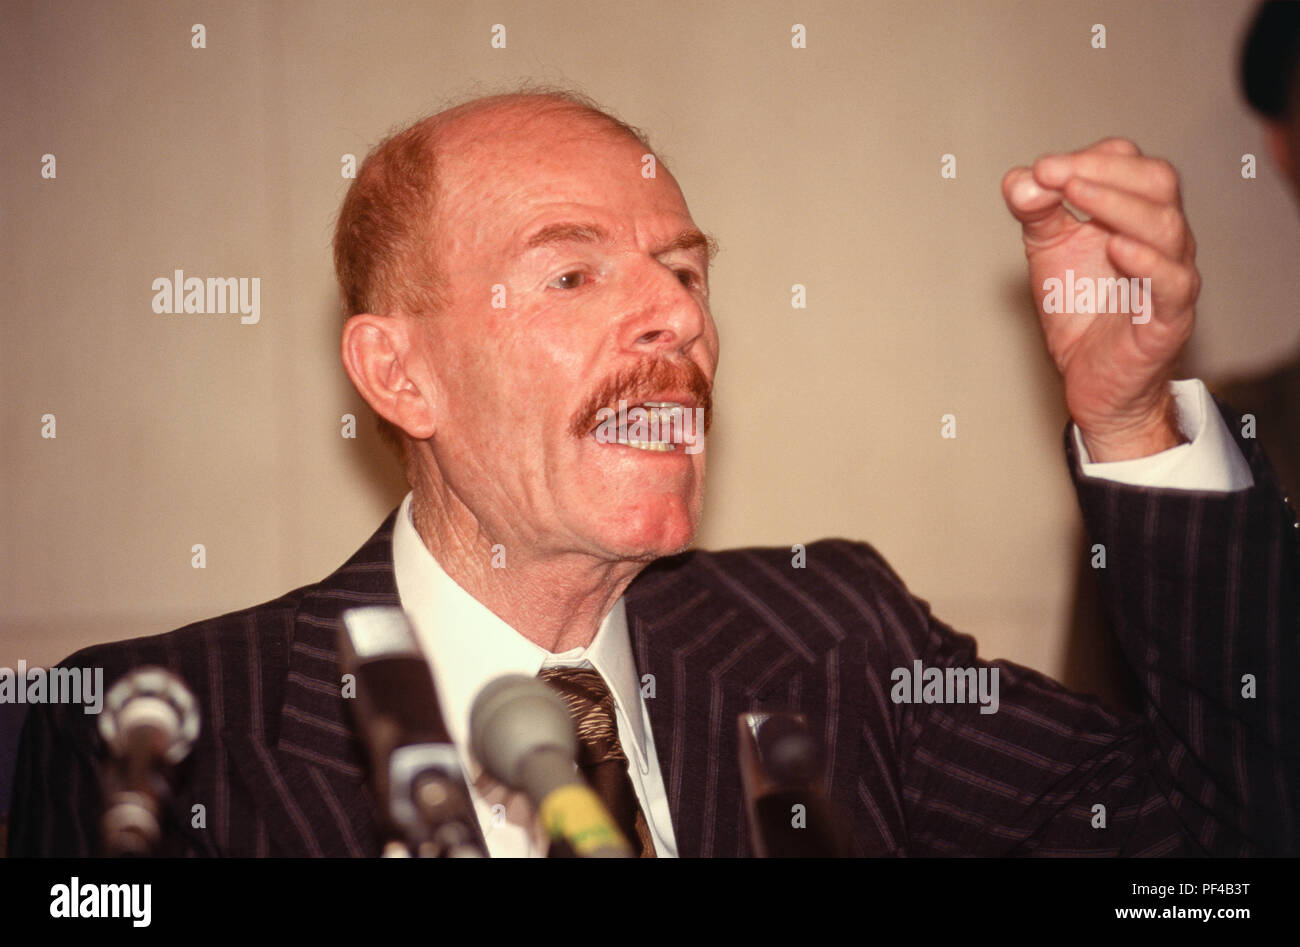 Baghdad, Iraq - 16 October 1995 - Izzat Ibrahim al-Douri, Iraqi statesman and Vice Chairman of the Iraqi Revolutionary Command Council and head of the elections committee for the Presidential Referendum on 15 Ocotober 1995, announces the results to the press, where President Saddam Hussein won 99.96% of the vote.    The only question on the paper ballot of the referendum was 'Do you approve of President Saddam Hussein being President of the Republic? Iraqi's find it harder to maintain a decent standard of living due to the strict UN sanctions imposed during the 1990s because of Iraq's invasion - Stock Image